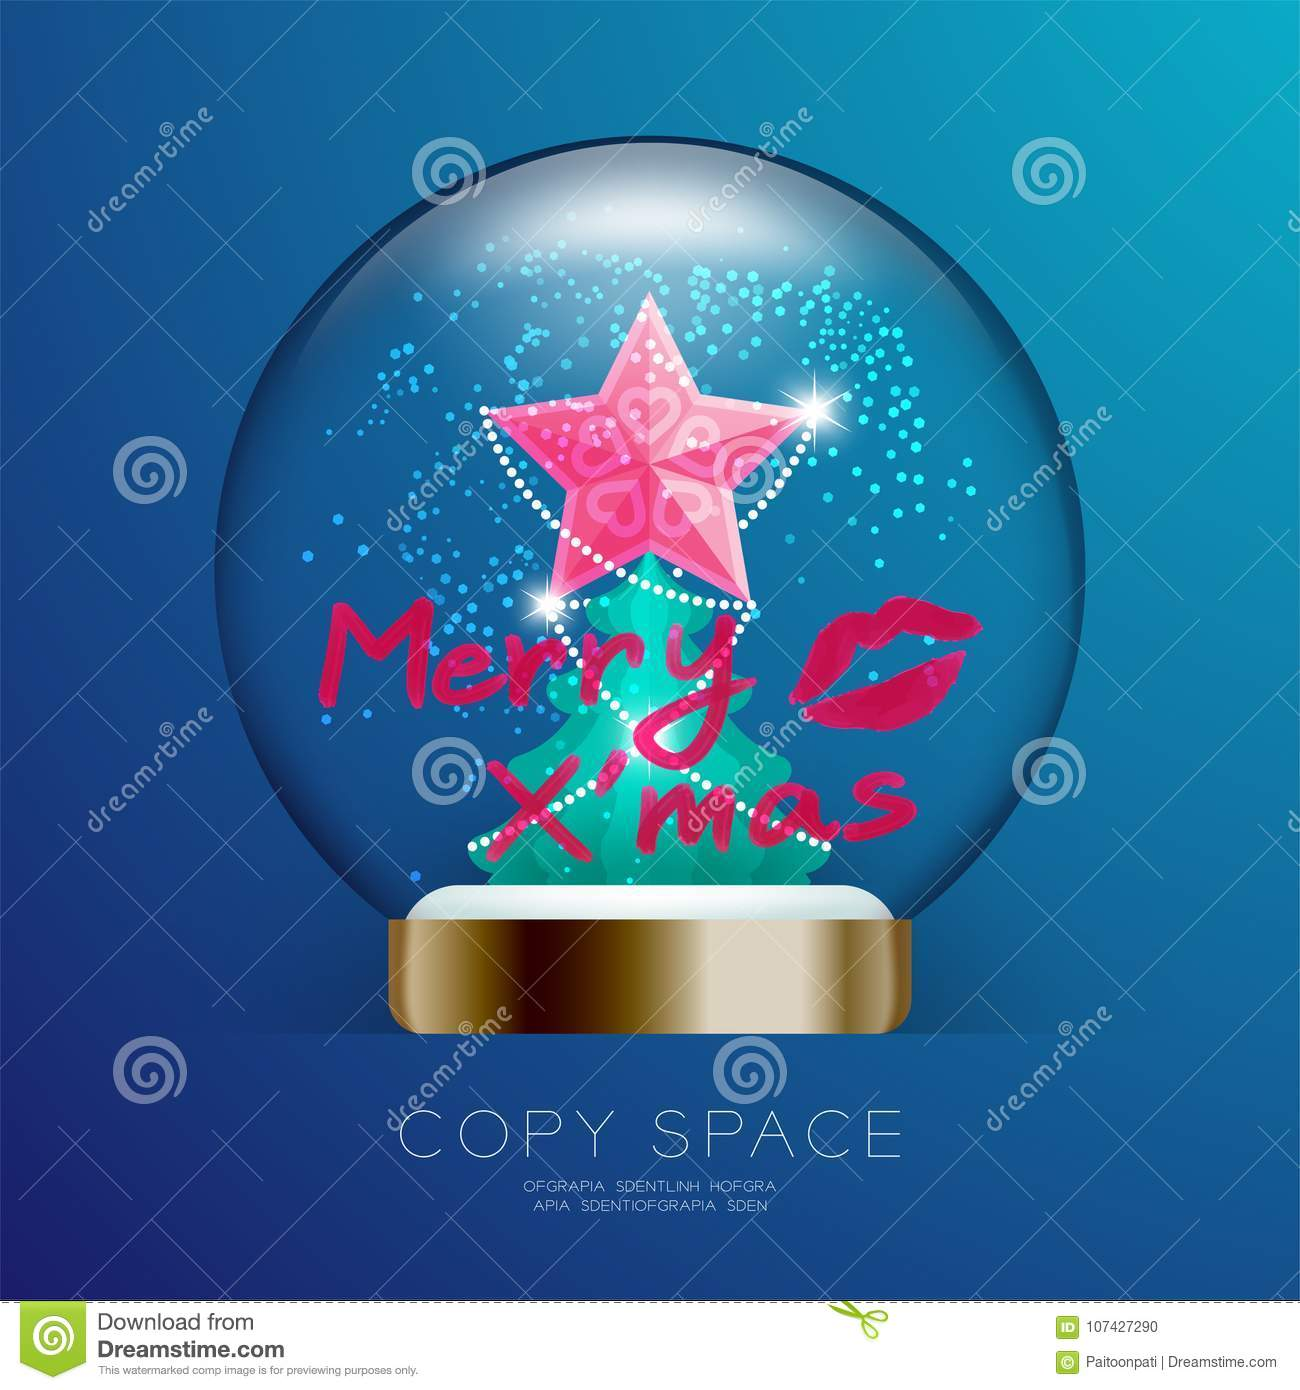 Souvenir Christmas Snowball Glass glitter with pink star, merry xmas text write by lipstick and kisses set illustration